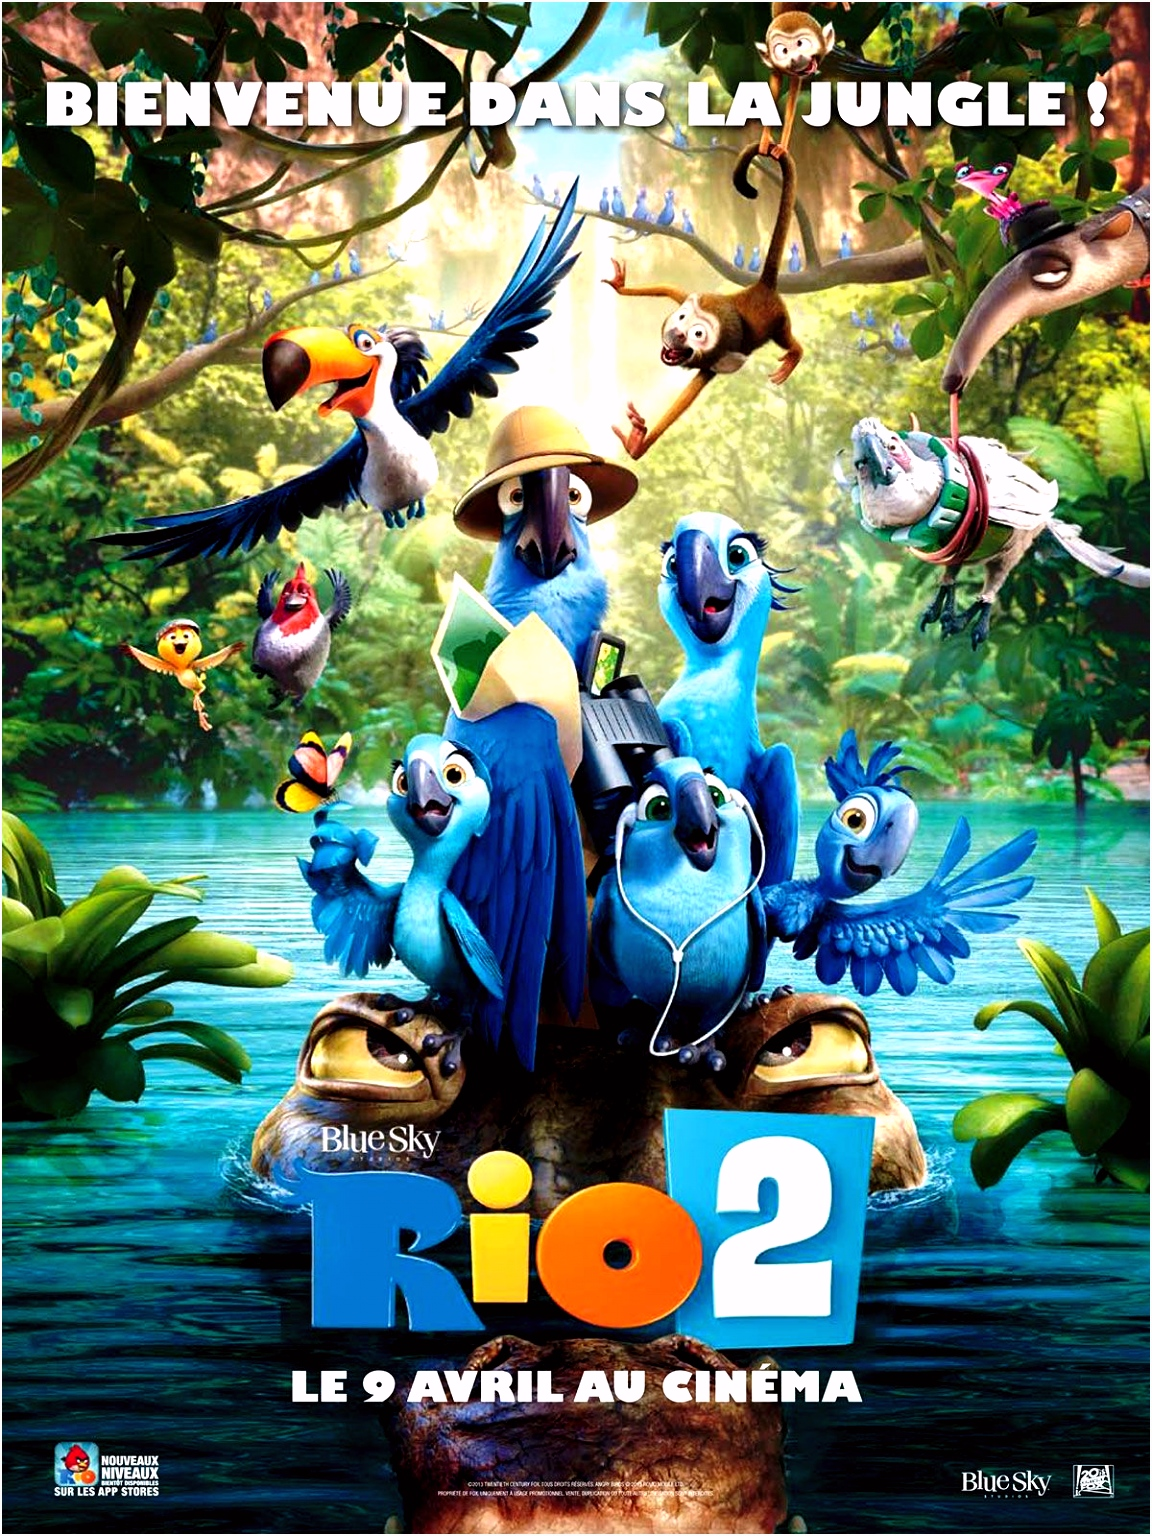 Rio 2 ≡ Hd ≡ Rio 2 En Streaming Plet Video W7uy33mgu7 Rmushueqau